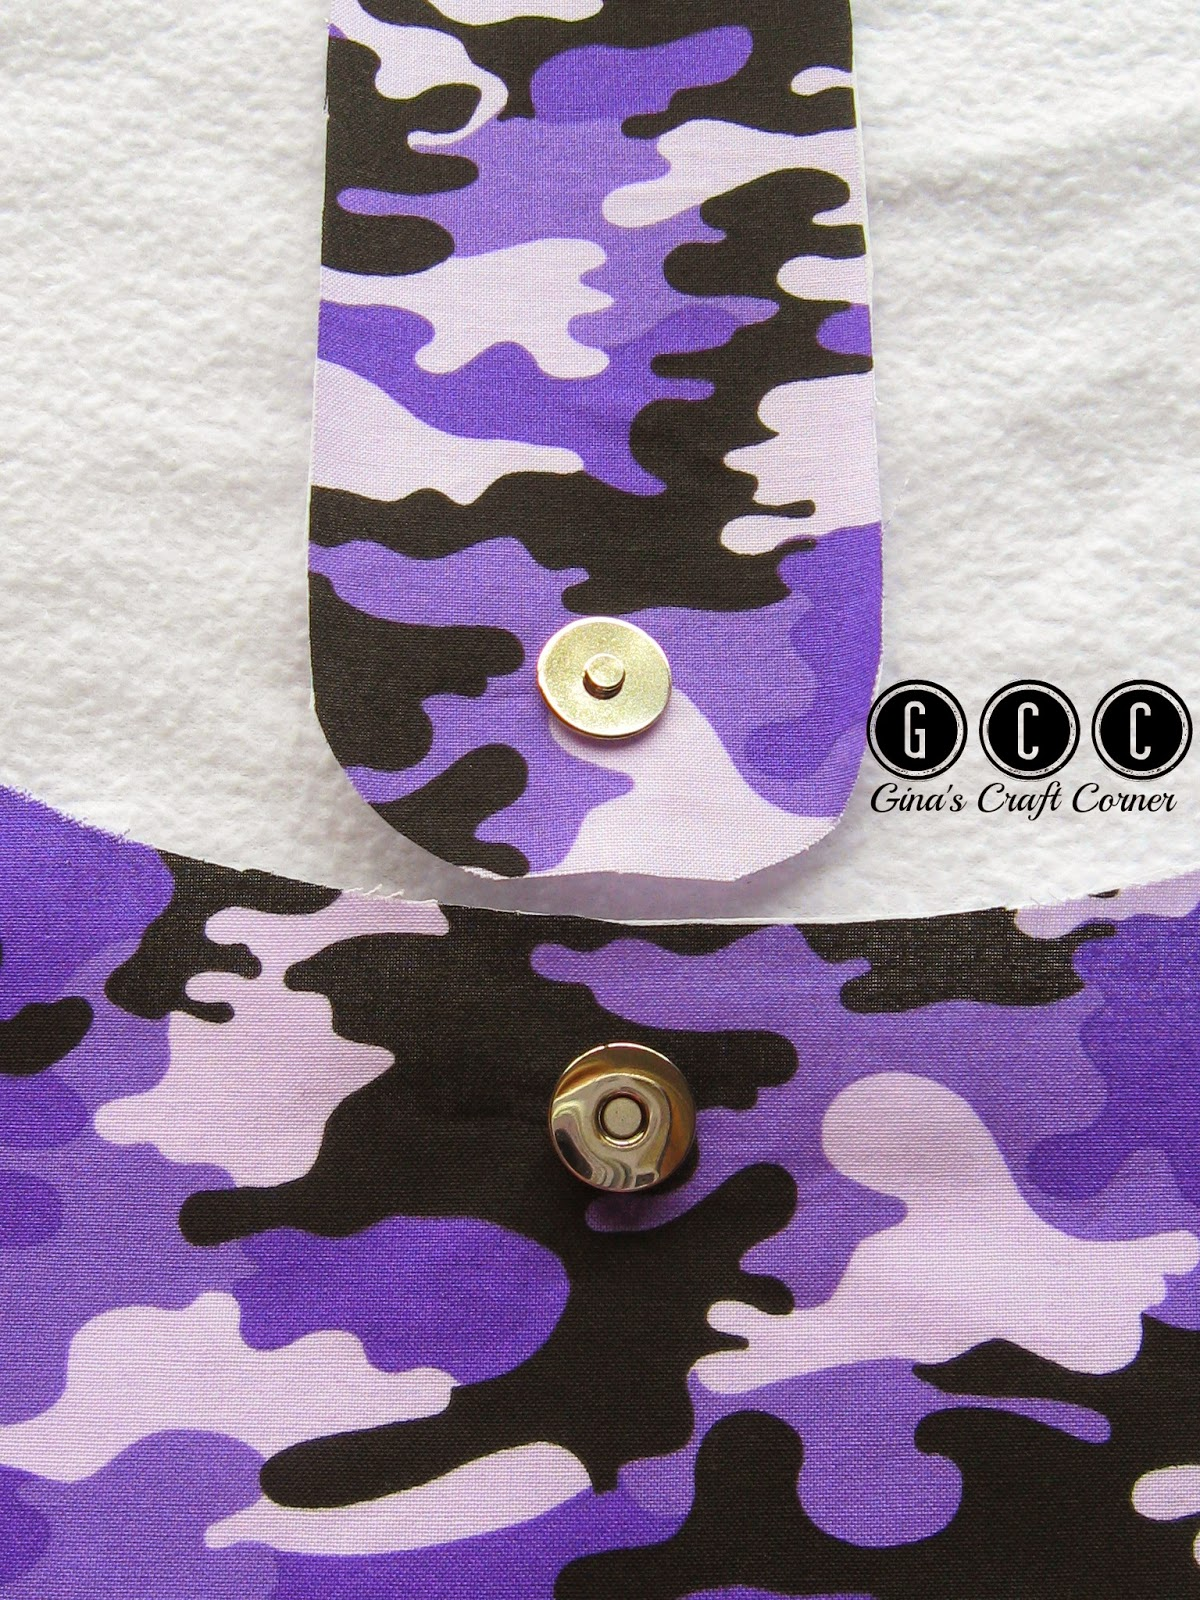 How to add magnets to your handbags by Gina's Craft Corner